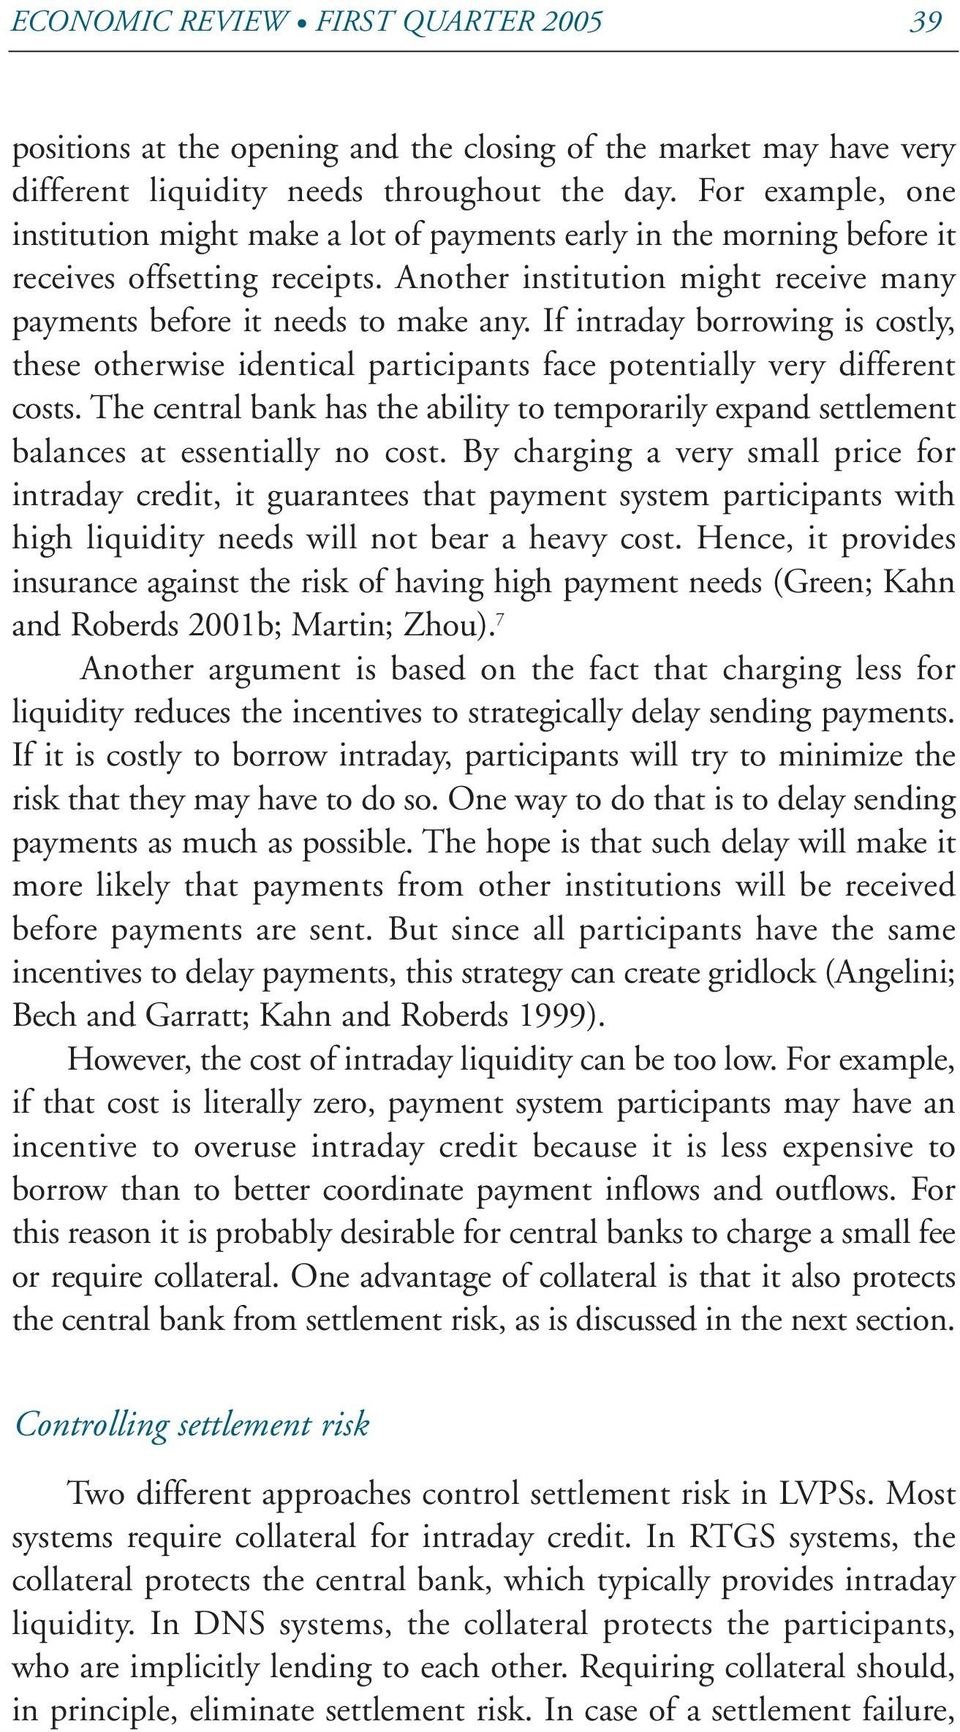 If intraday borrowing is costly, these otherwise identical participants face potentially very different costs.